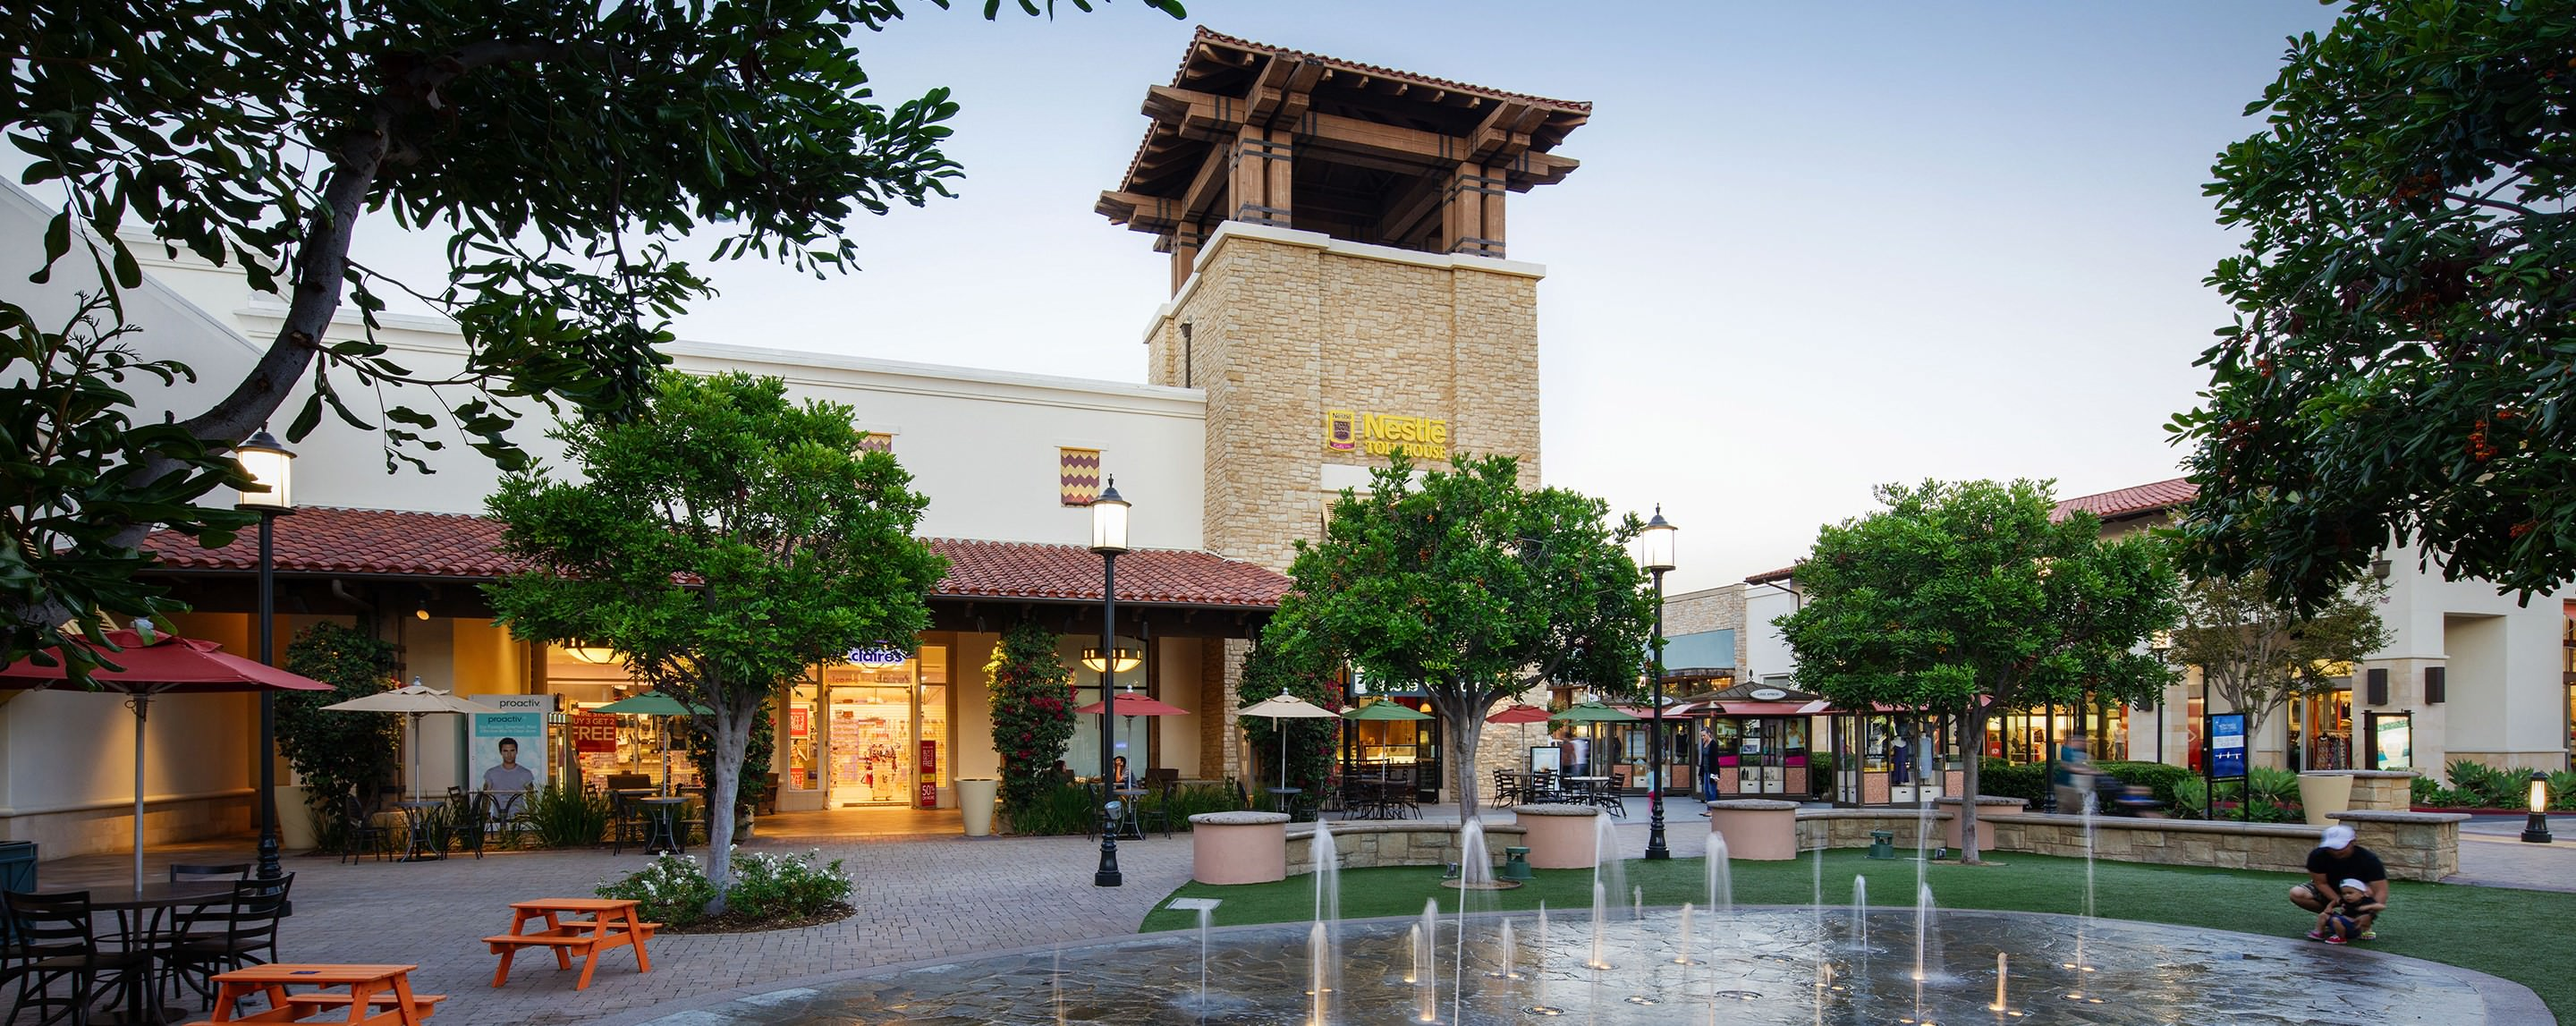 A fountain in an outdoor shopping plaza near a Claire's jewelry store and a Nestle Toll House cookie shop.